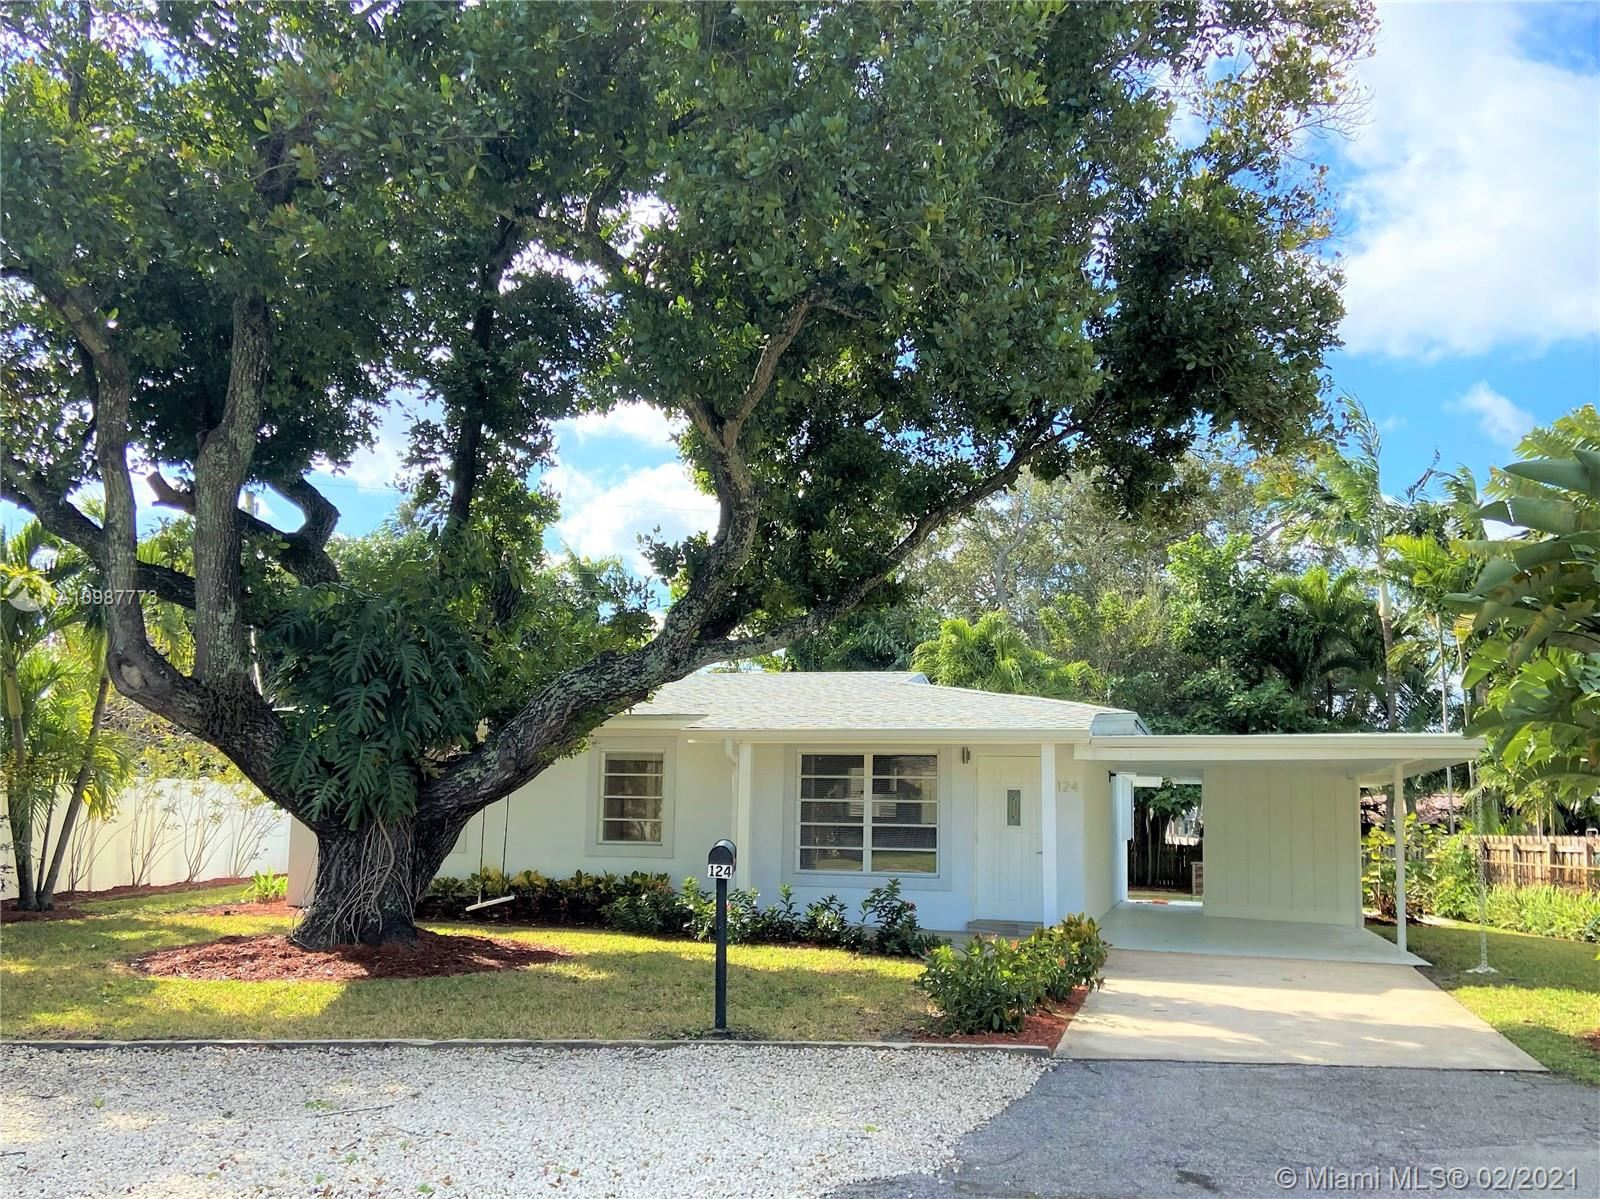 Photo of 124 NW 22nd St, Wilton Manors, FL 33311 (MLS # A10987773)